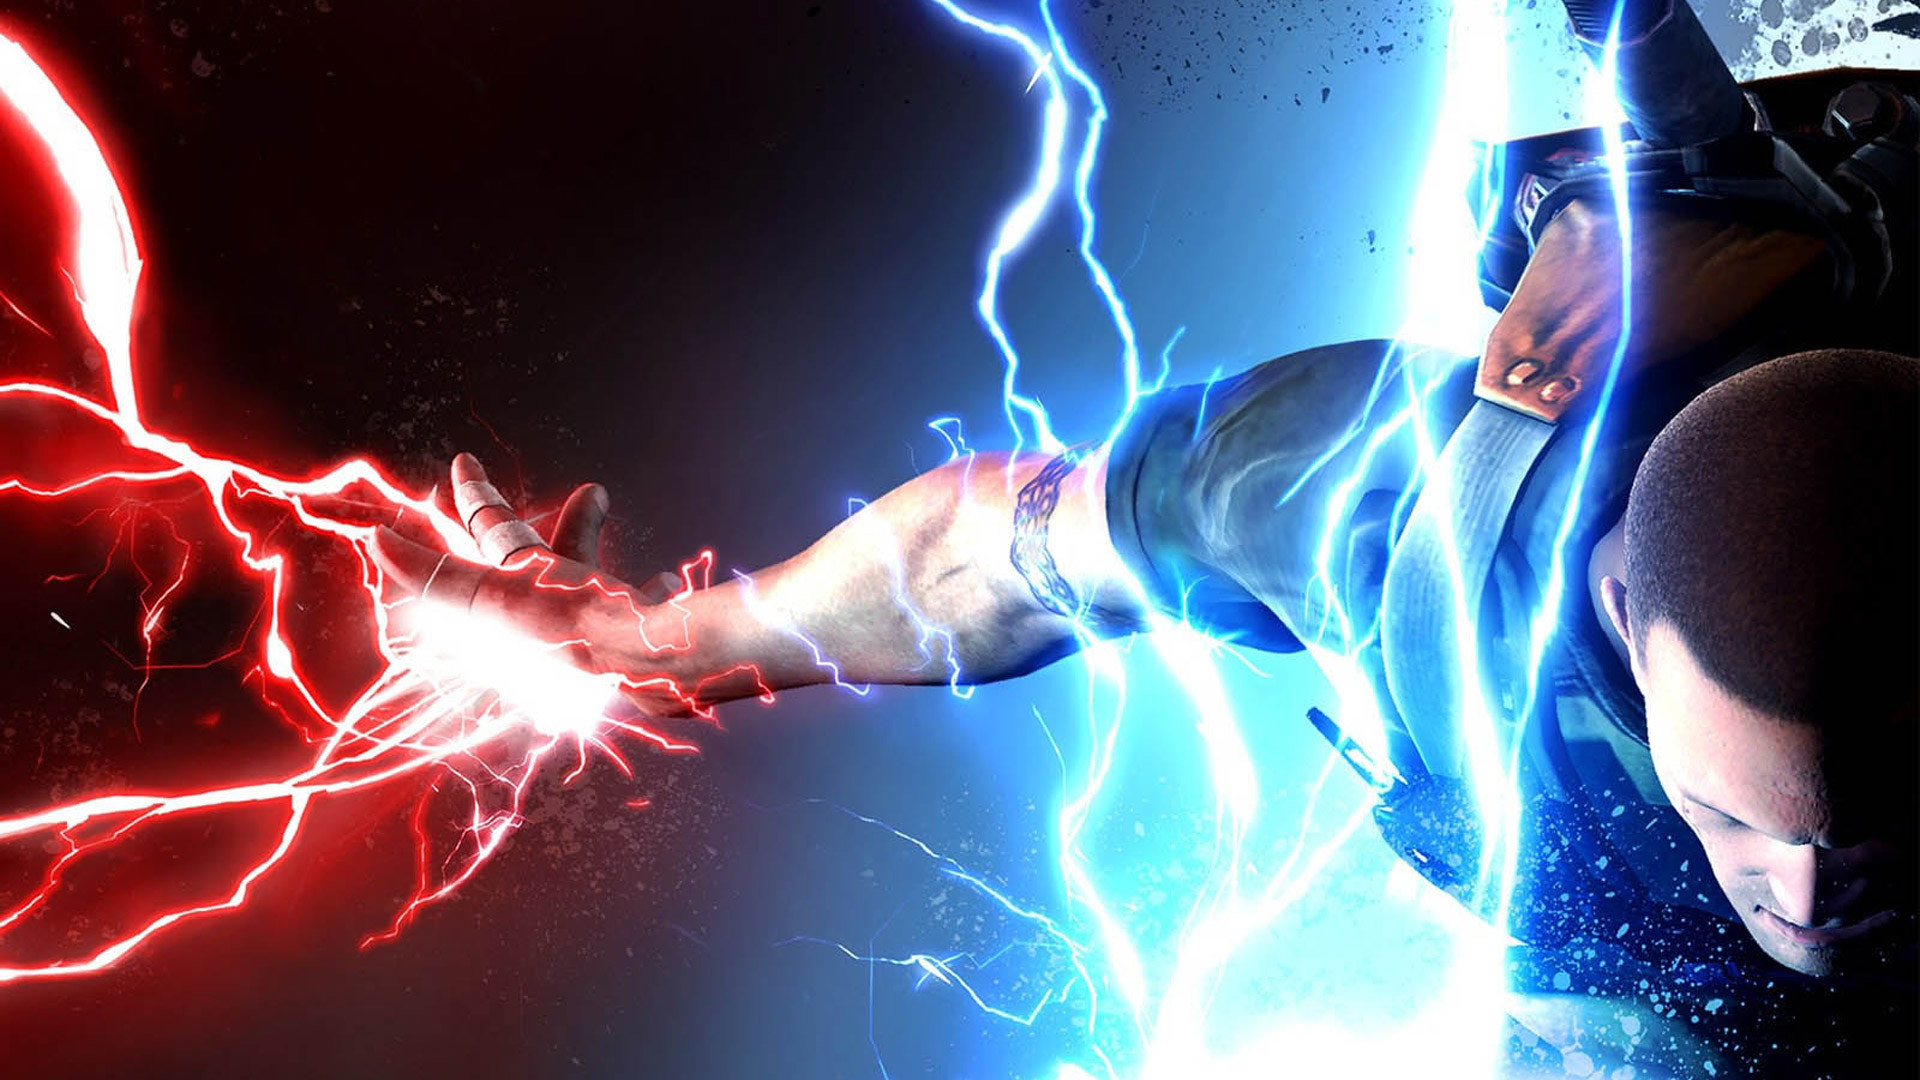 1920x1080 Free Infamous 2 Wallpaper in